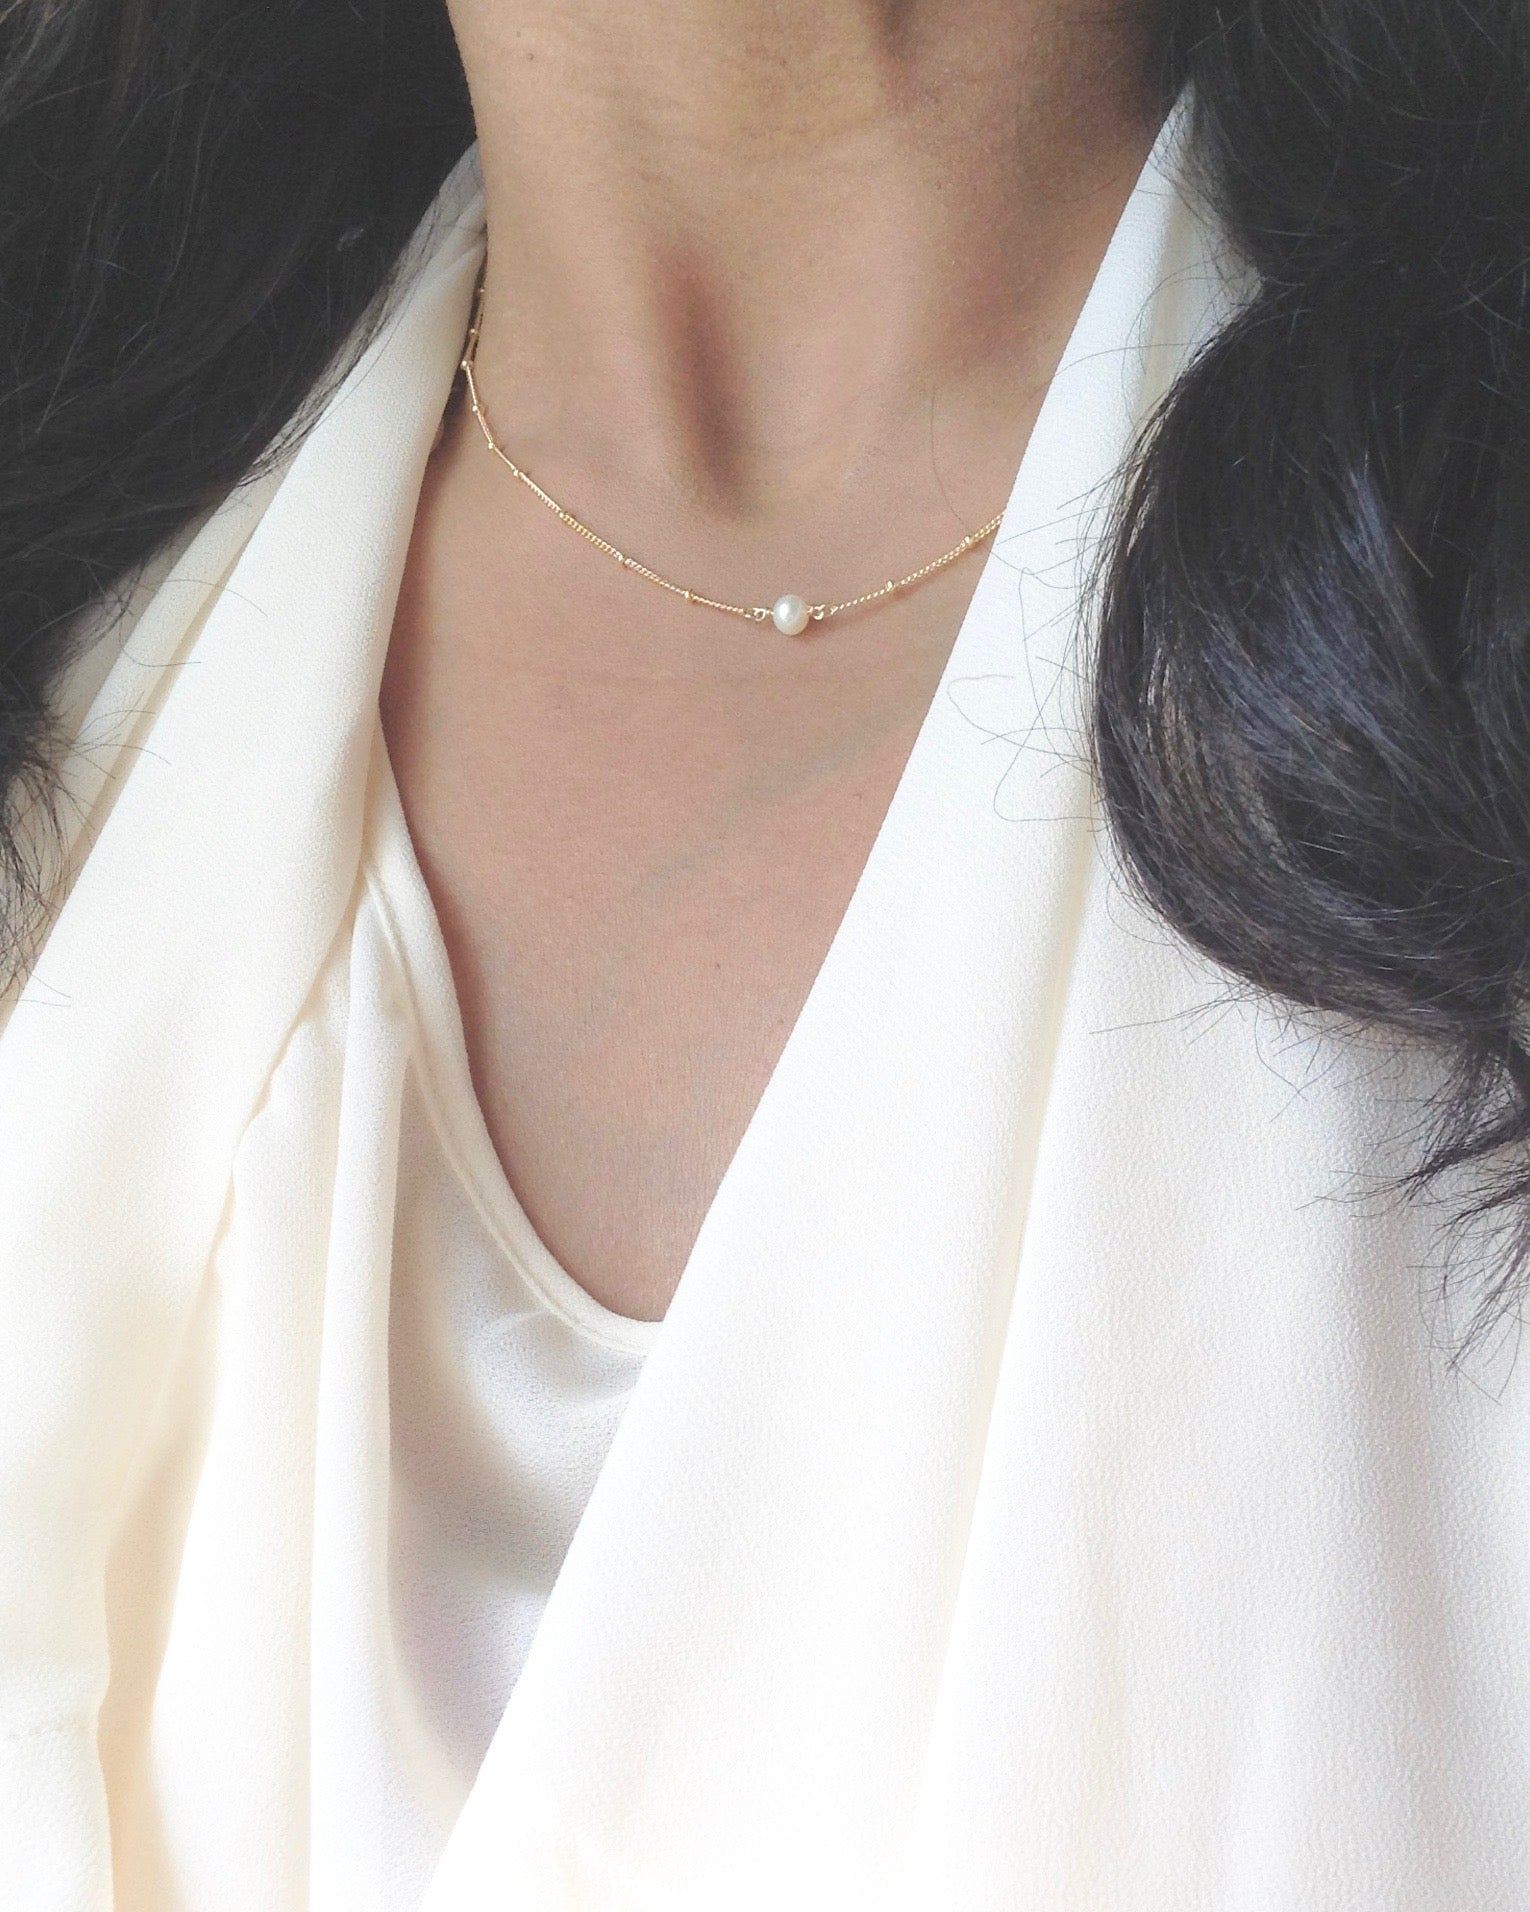 Delicate Pearl Necklace in Gold Filled or Sterling Silver | Minimal Pearl Necklace | IB Jewelry